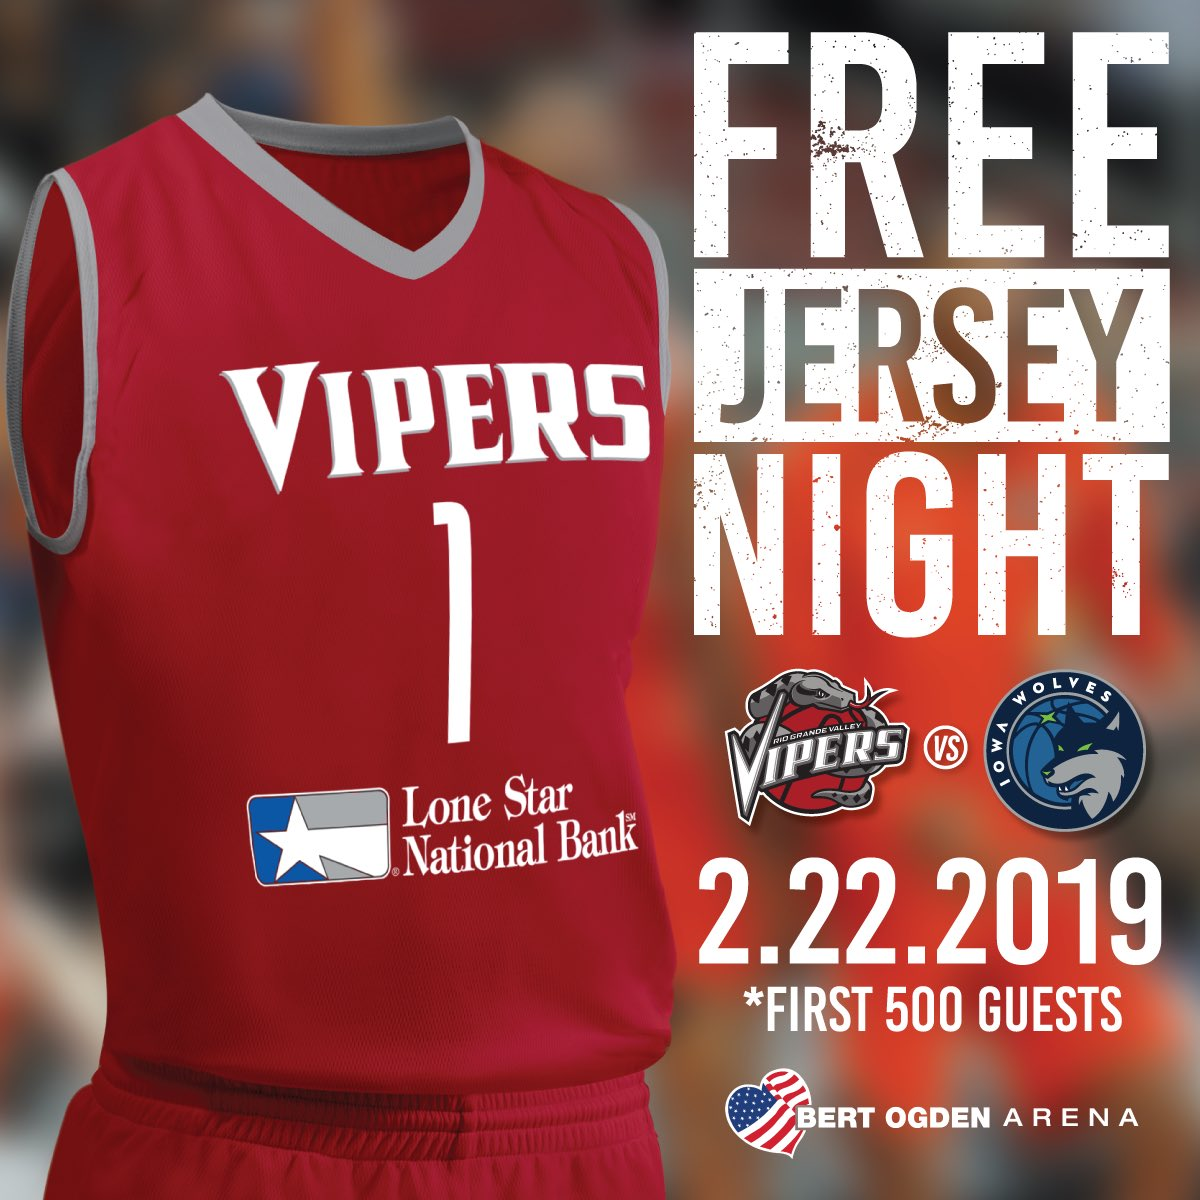 TOMORROW Friday, February 22nd the first 500 guests to come to the Bert Ogden Arena (ticket holders only)will get a FREE REPLICA VIPERS JERSEY!  Sponsored by @lsnbank  Visit our box office or website http://rgvipers.com to purchase your tickets! #NBAGLeague #RGVVipers